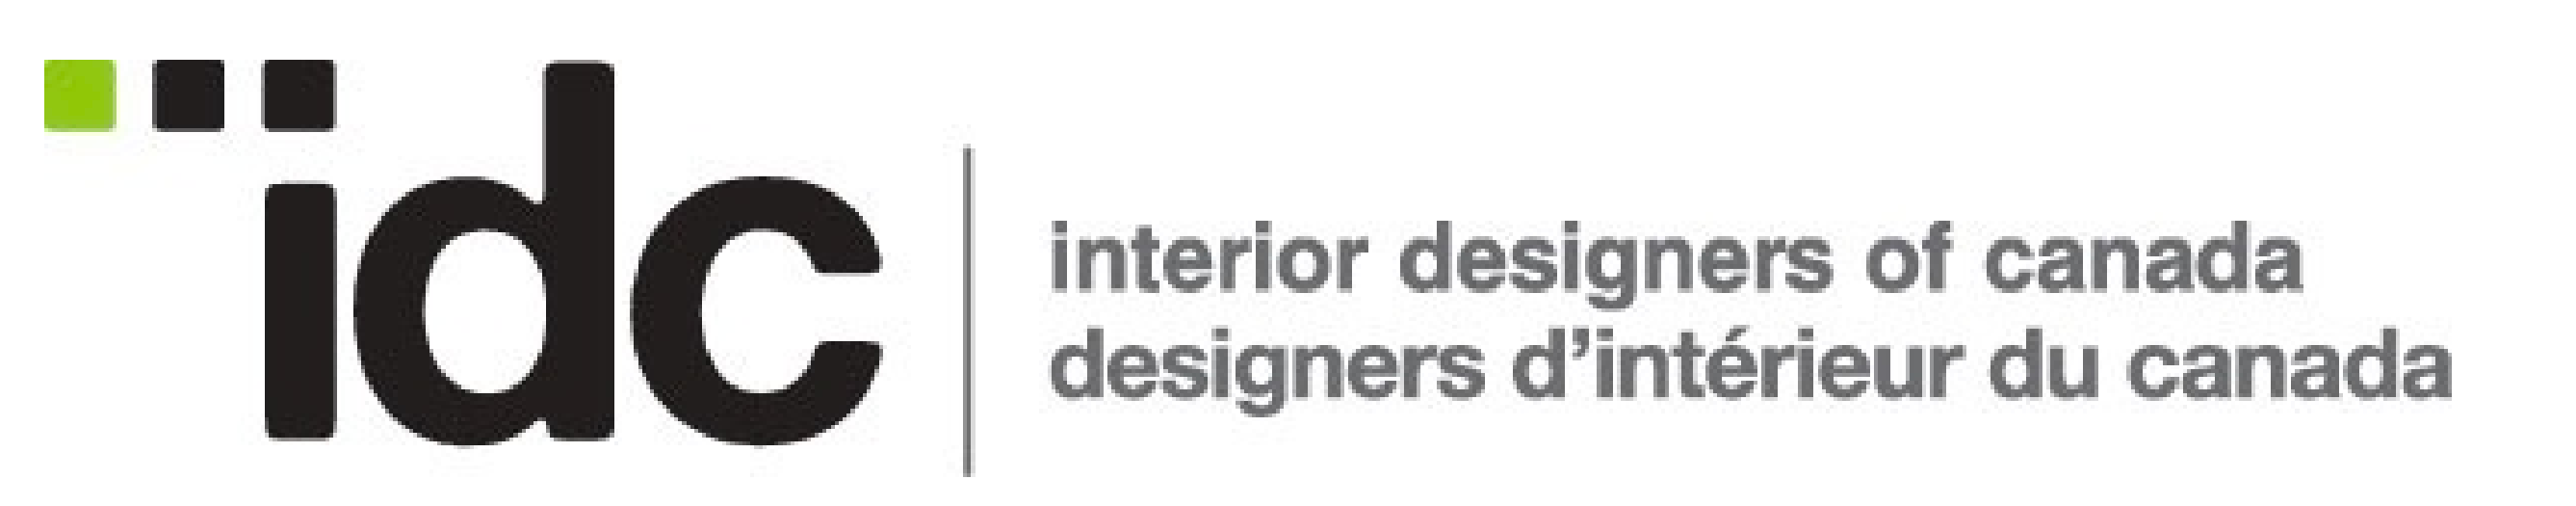 Interior Designers Association of Canada logo